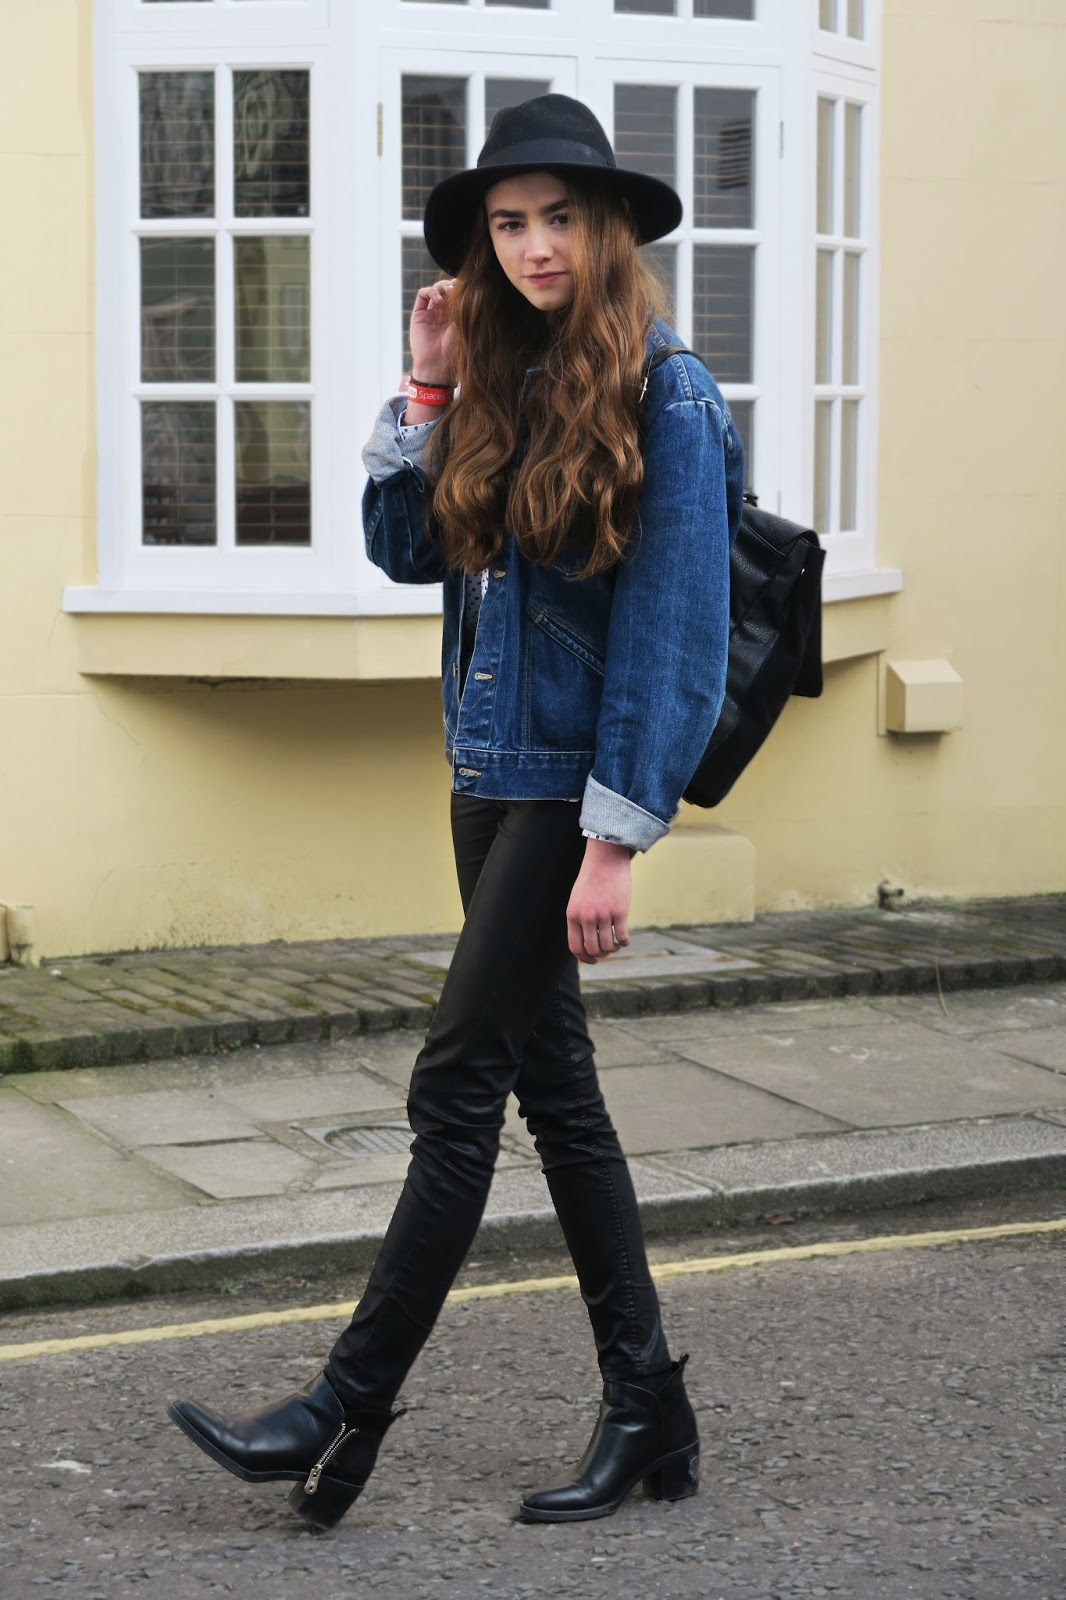 Denim jacket, OOTD, Fashion thick eyebrows, cara delevigne eyebrows, lily collins eyebrows, lily collins, blogger, British blogger, mandeville sisters, amelia mandeville, chelsea house, houses in chelsea, denim fashion, lookbook,